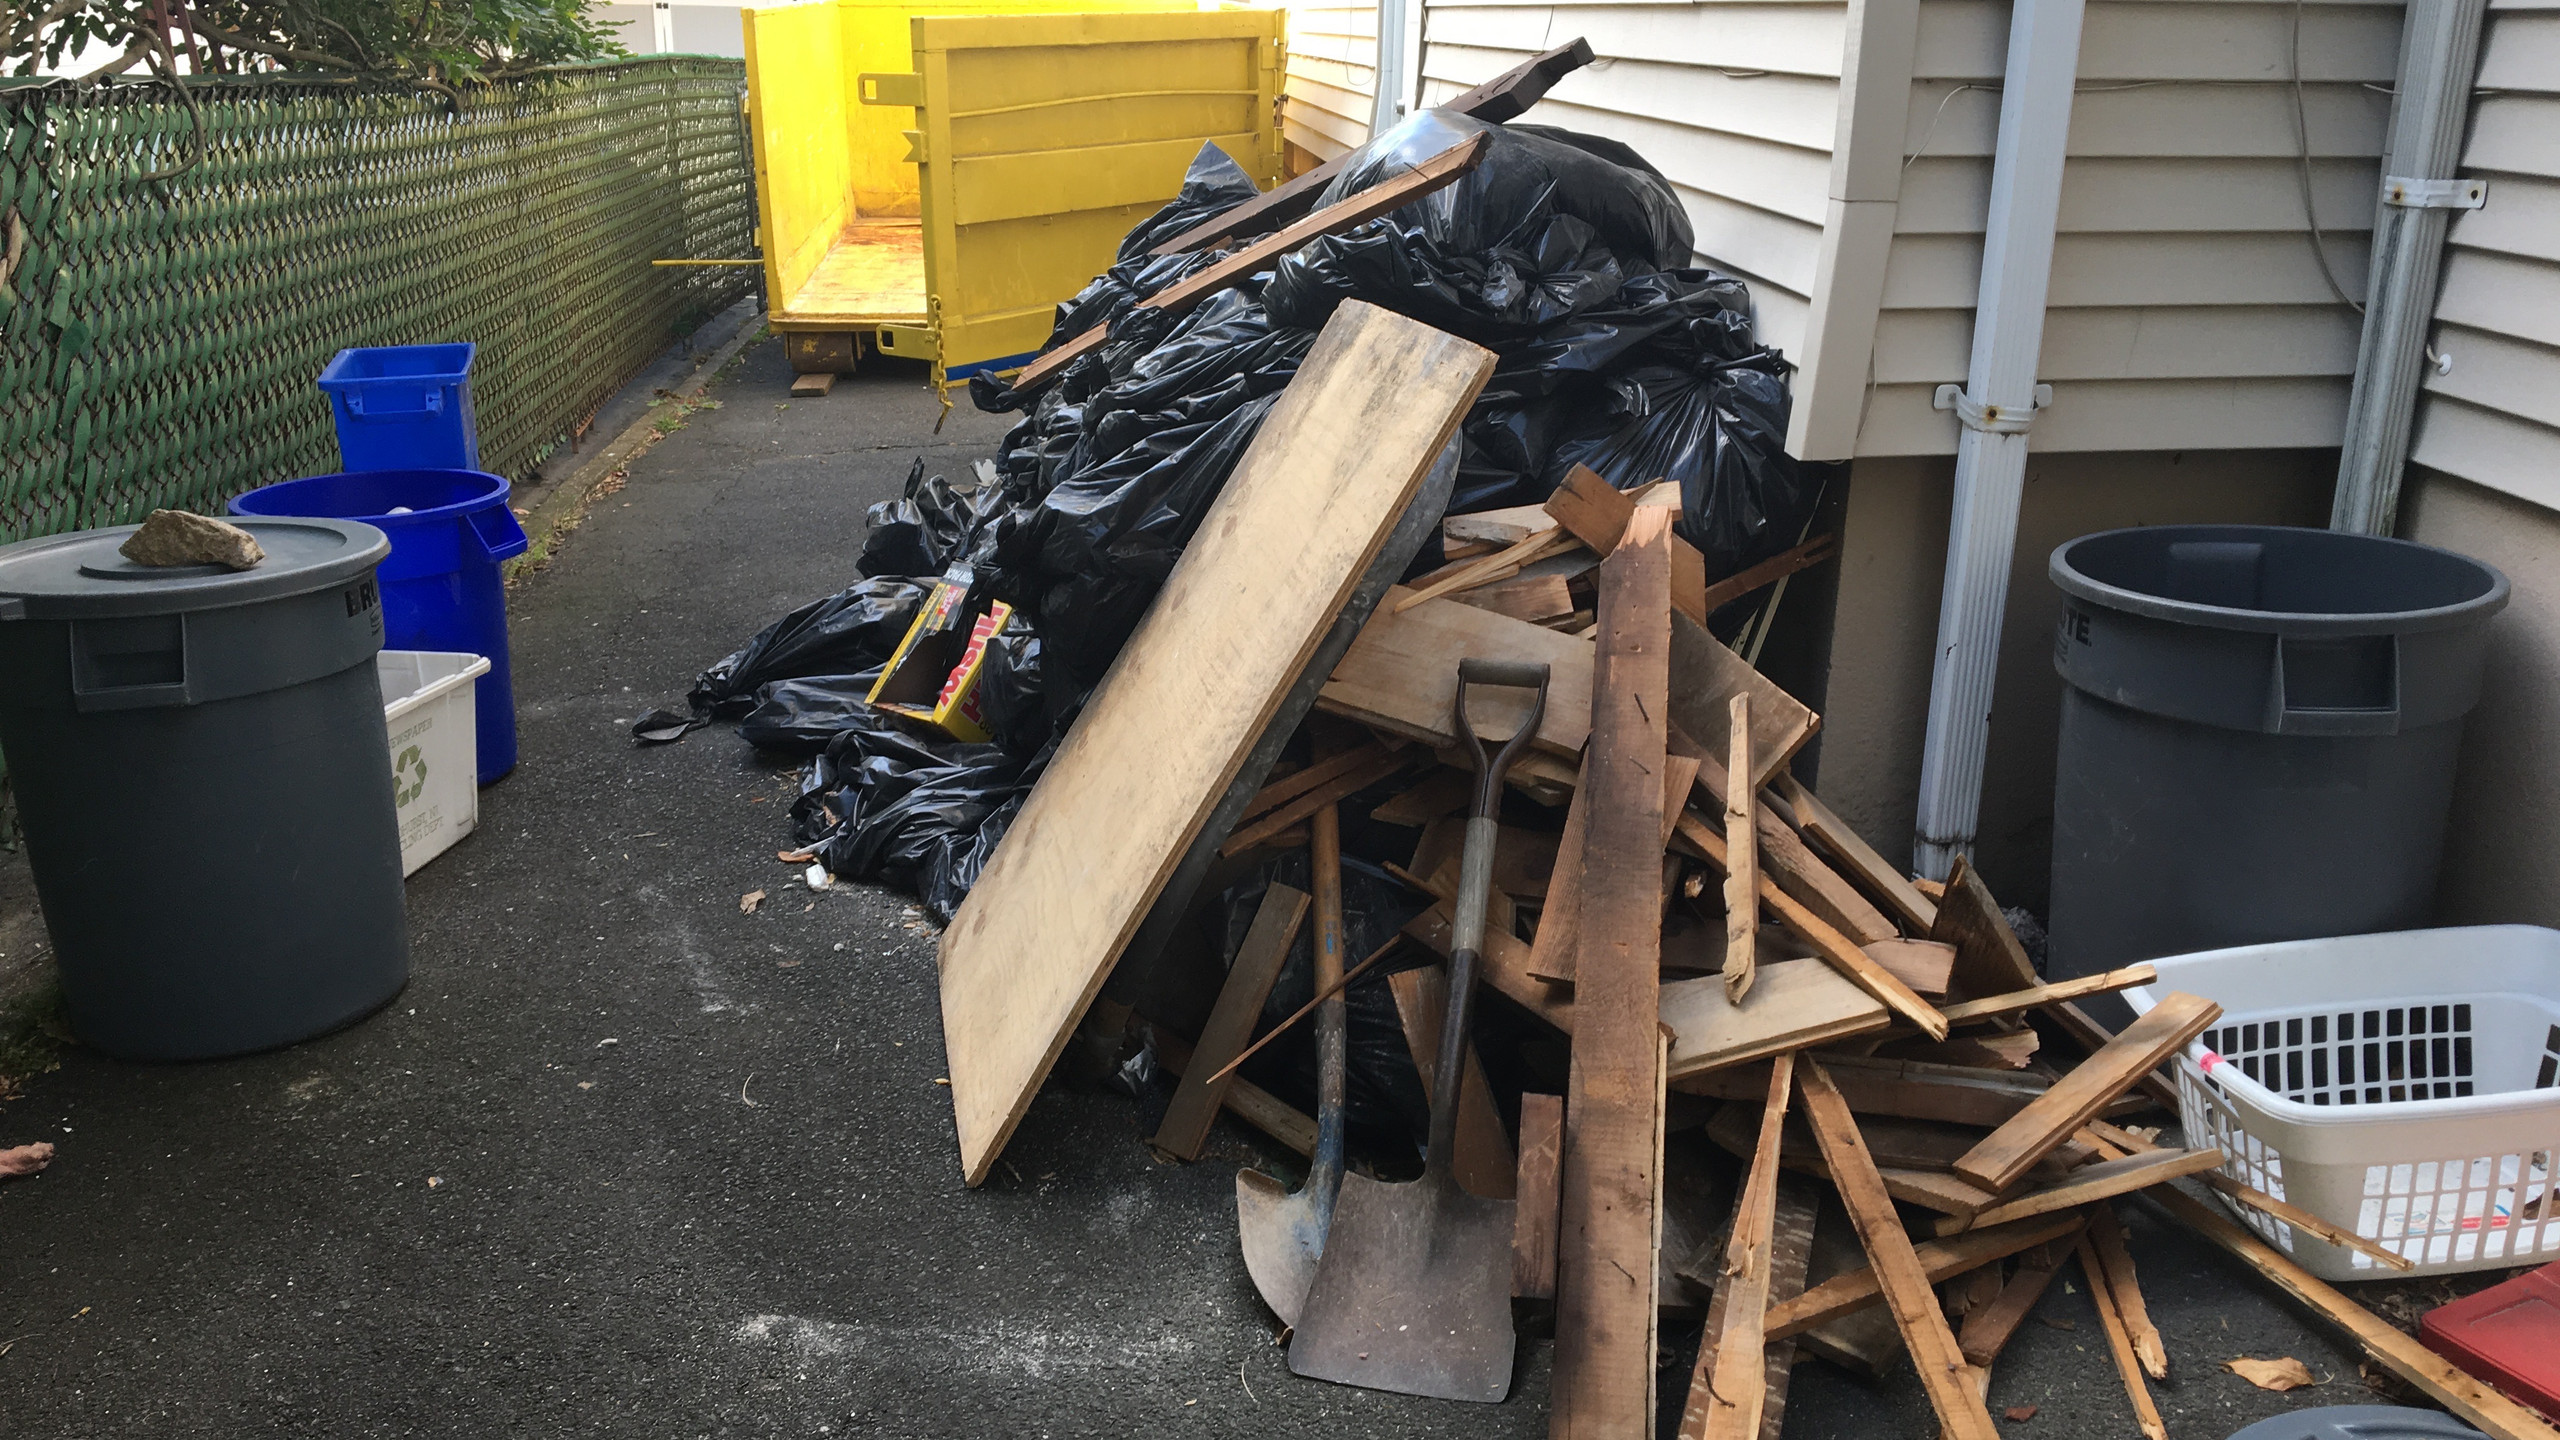 The dumpster is close to the pile.